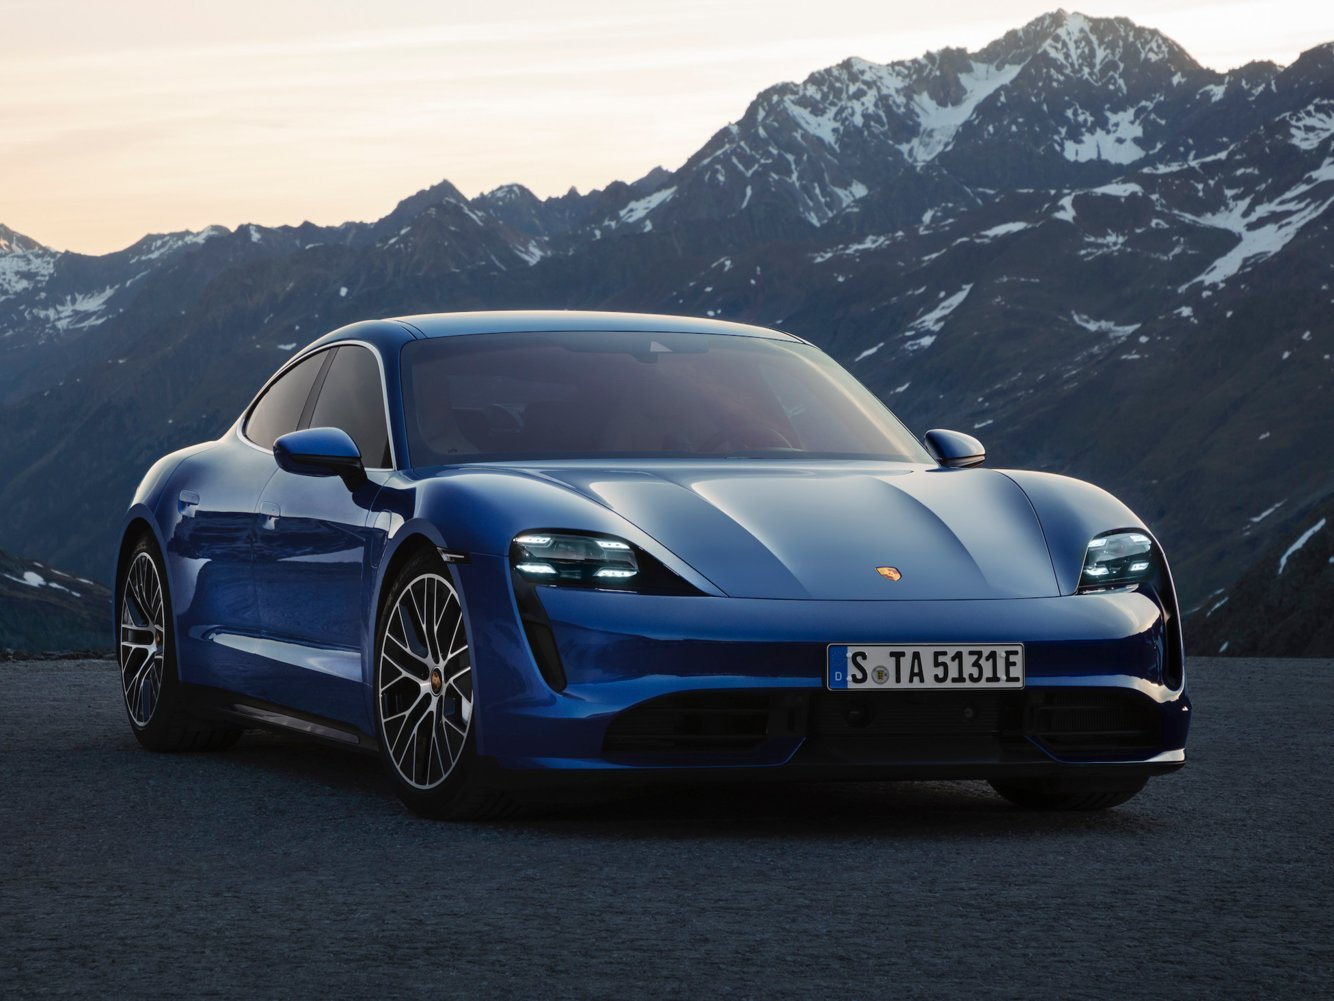 In the battle of the Tesla Model S and the Porsche Taycan, it's really no contest